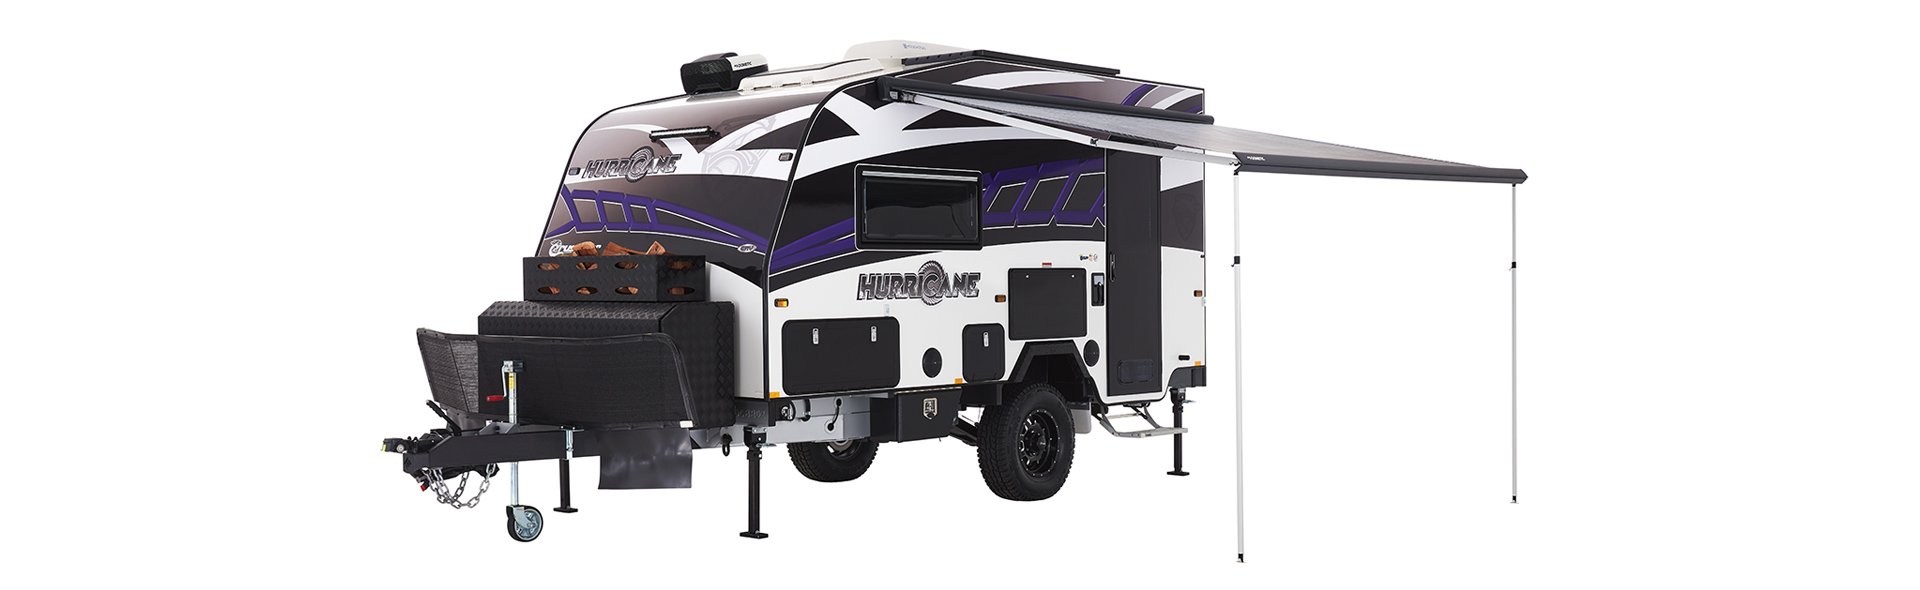 The Hurricane has a 3.5 metre wind out awning so you can sit back and relax outside, come rain or shine.